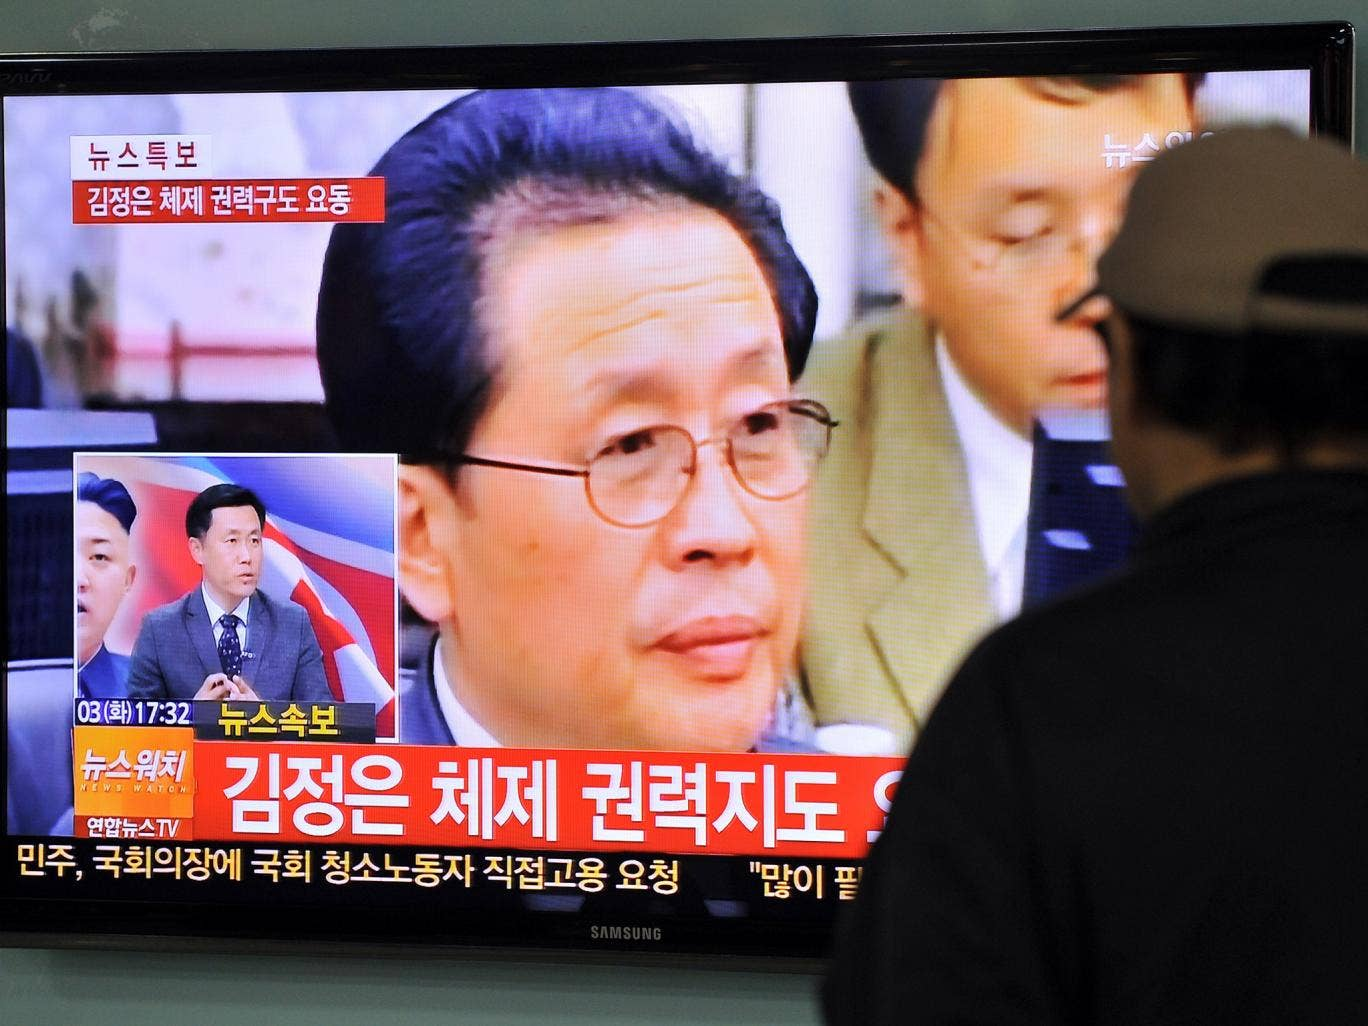 TV news about the alleged dismissal of Jang Song-Thaek, North Korean leader Kim Jong-Un's uncle, was broadcast in Seoul on 3 December 2013